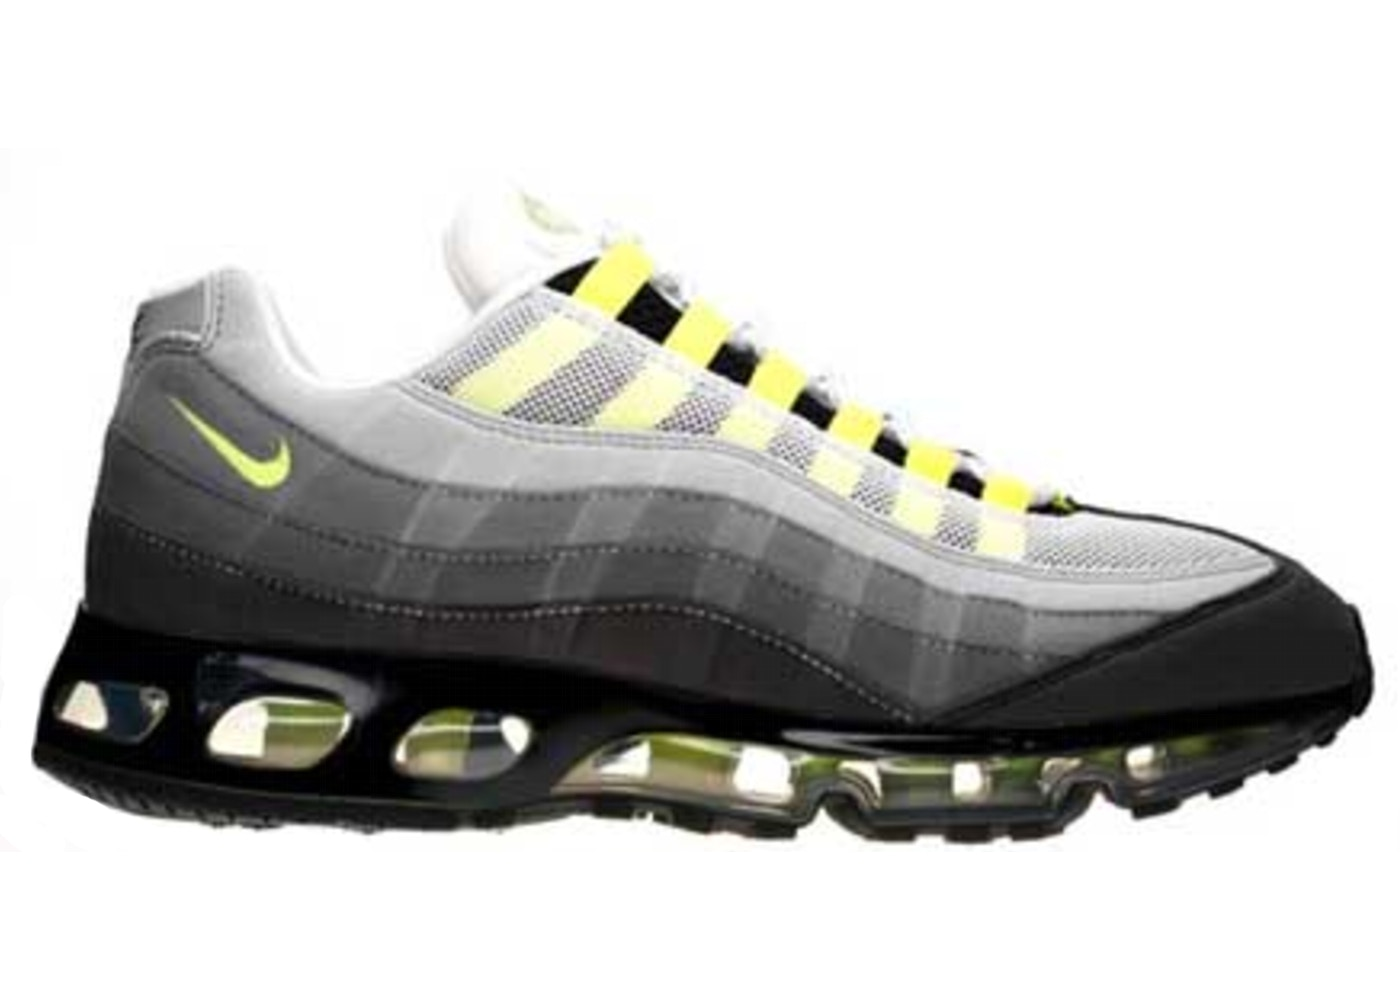 85e4a8e07c839c ... Air Max 95 360 One Time Only Pack Neon ...